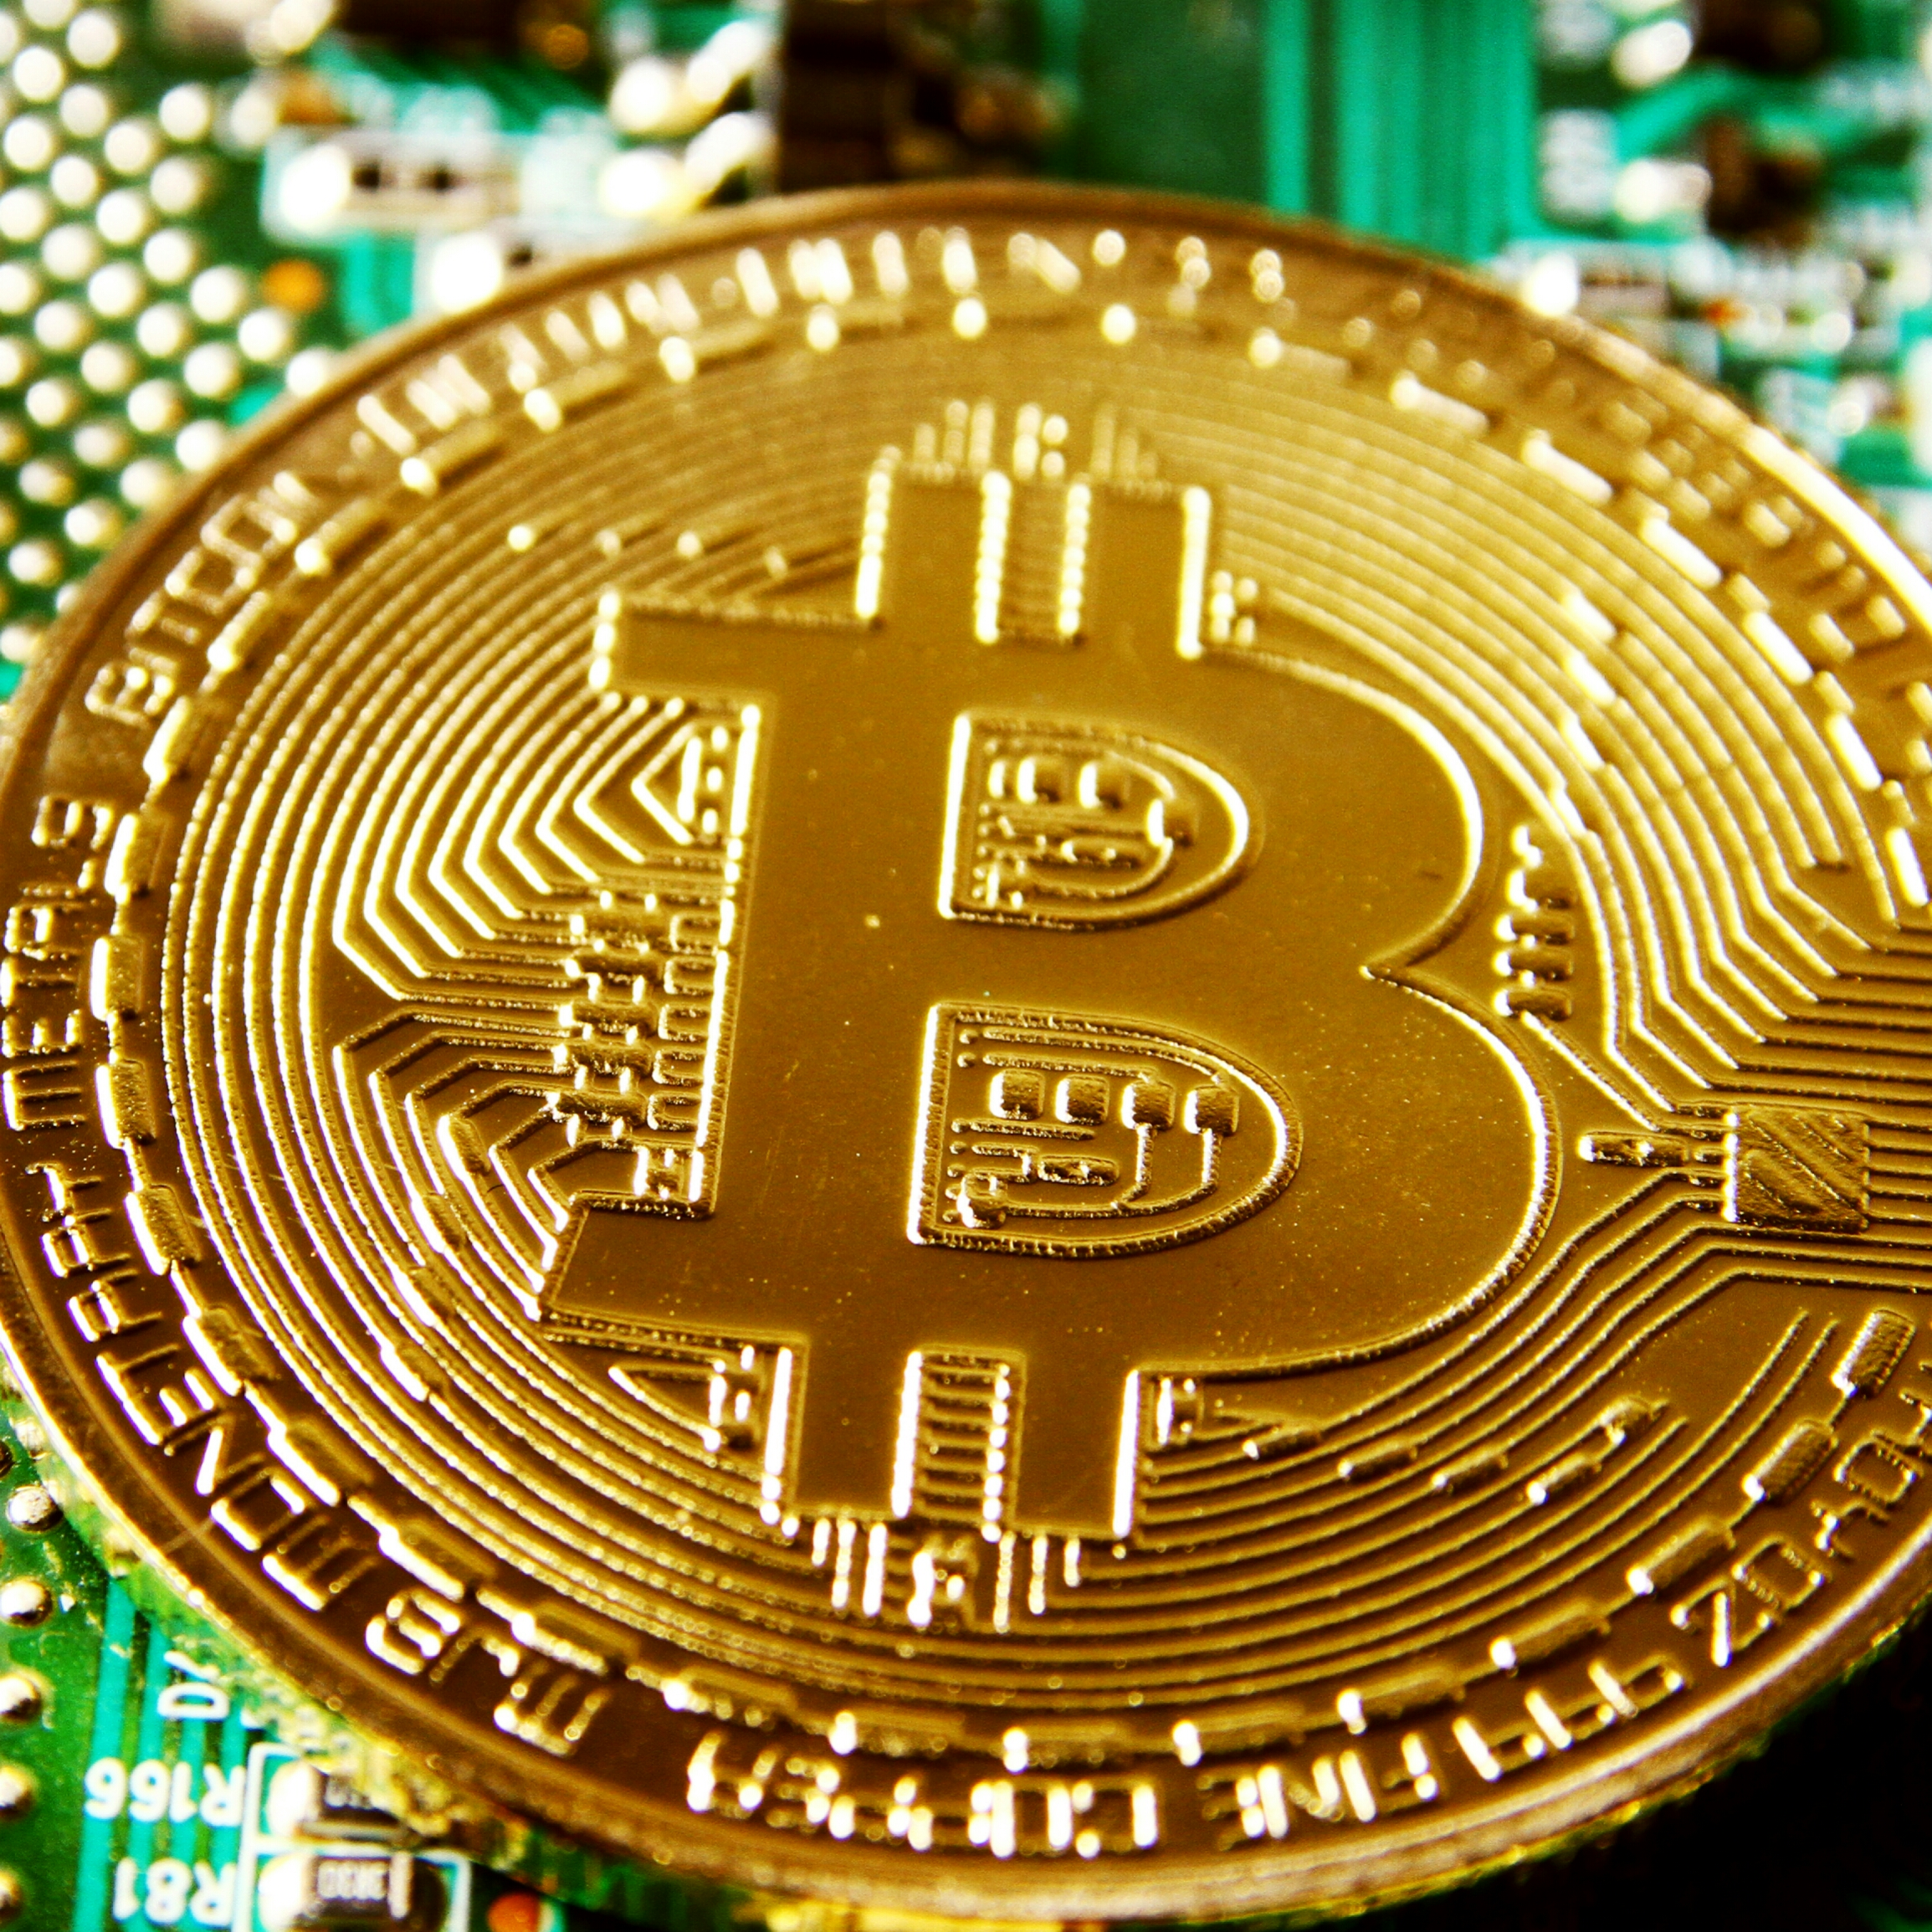 World Central Banks Proceeding Cautiously on Issuing own Digital Currencies